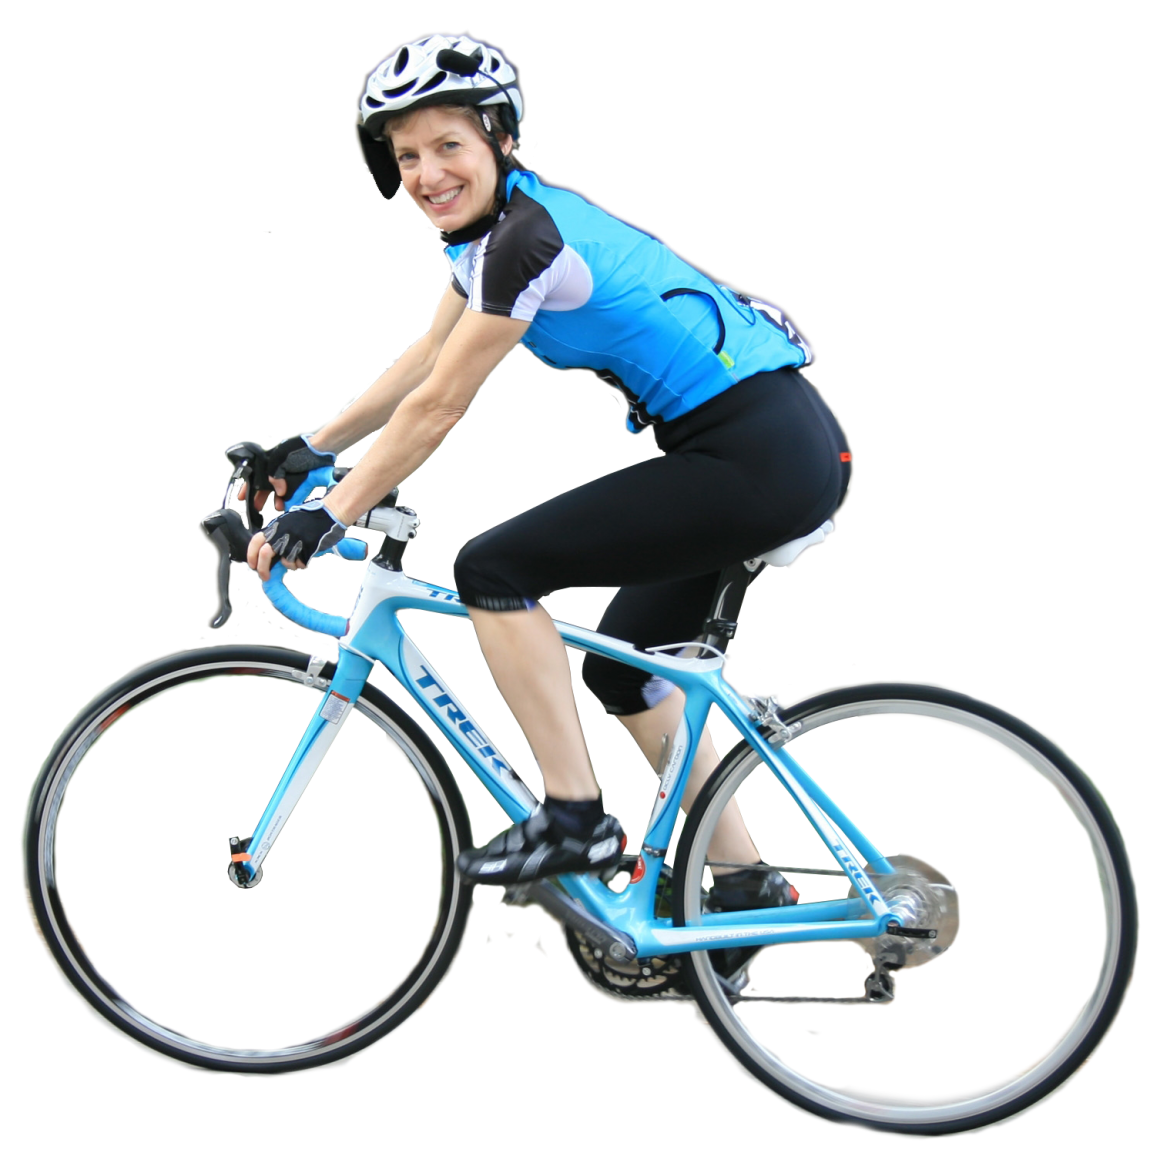 banner royalty free download Bicycles png images free. Biking clipart bike tour.